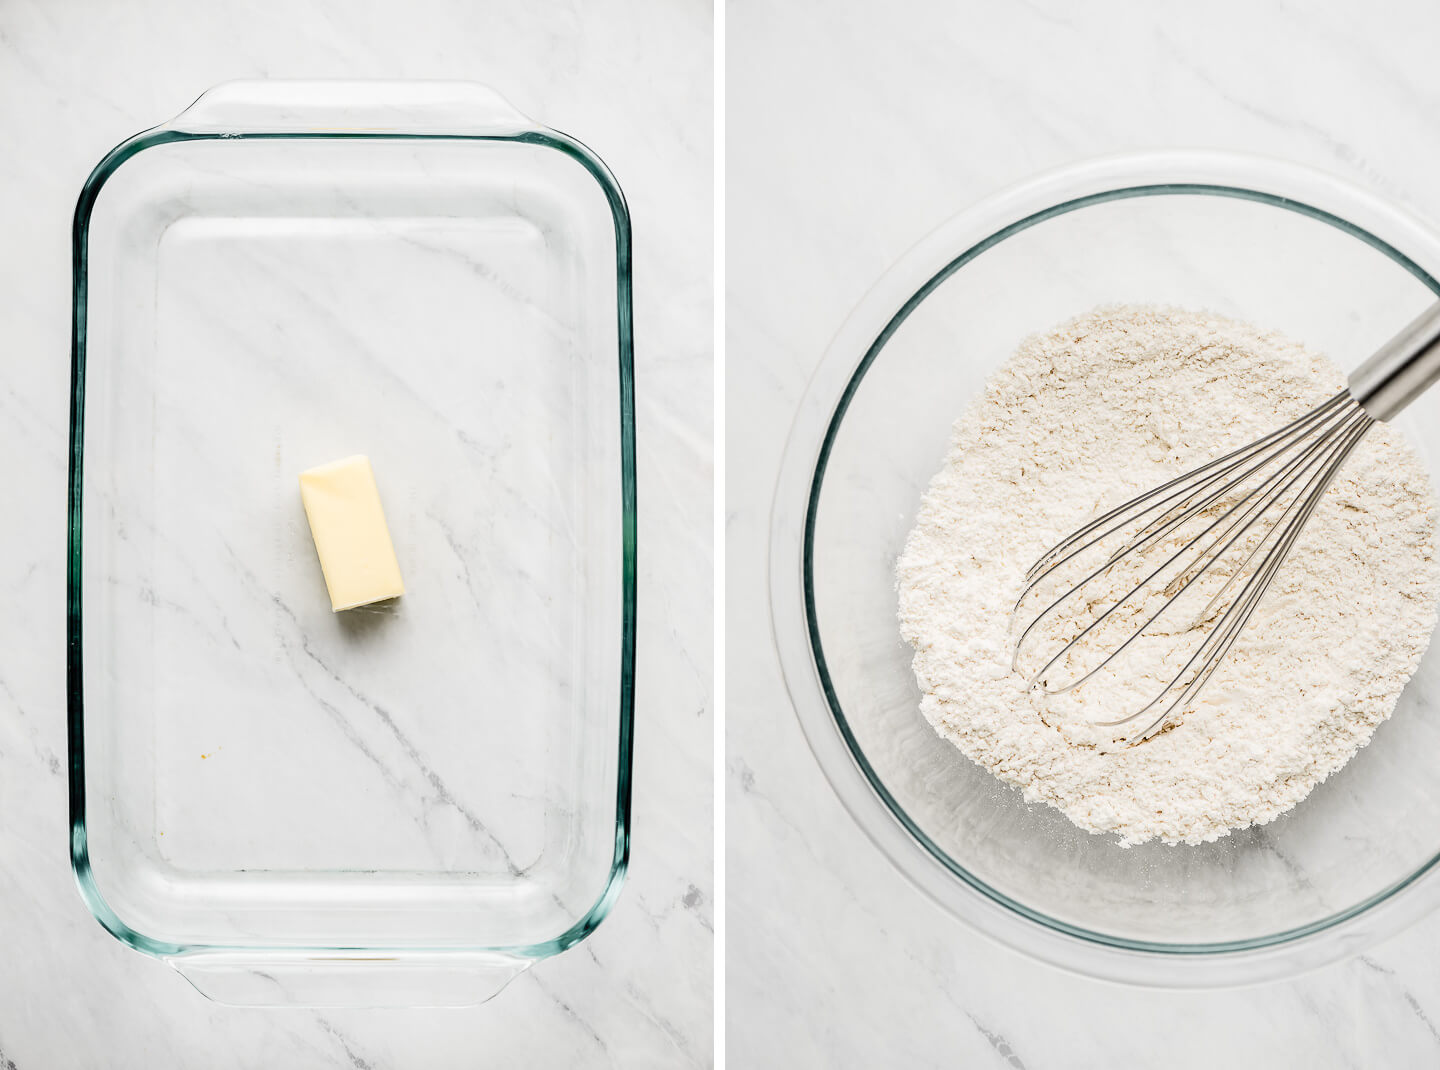 Butter in a glass baking pan; flour and a whisk in a glass mixing bowl